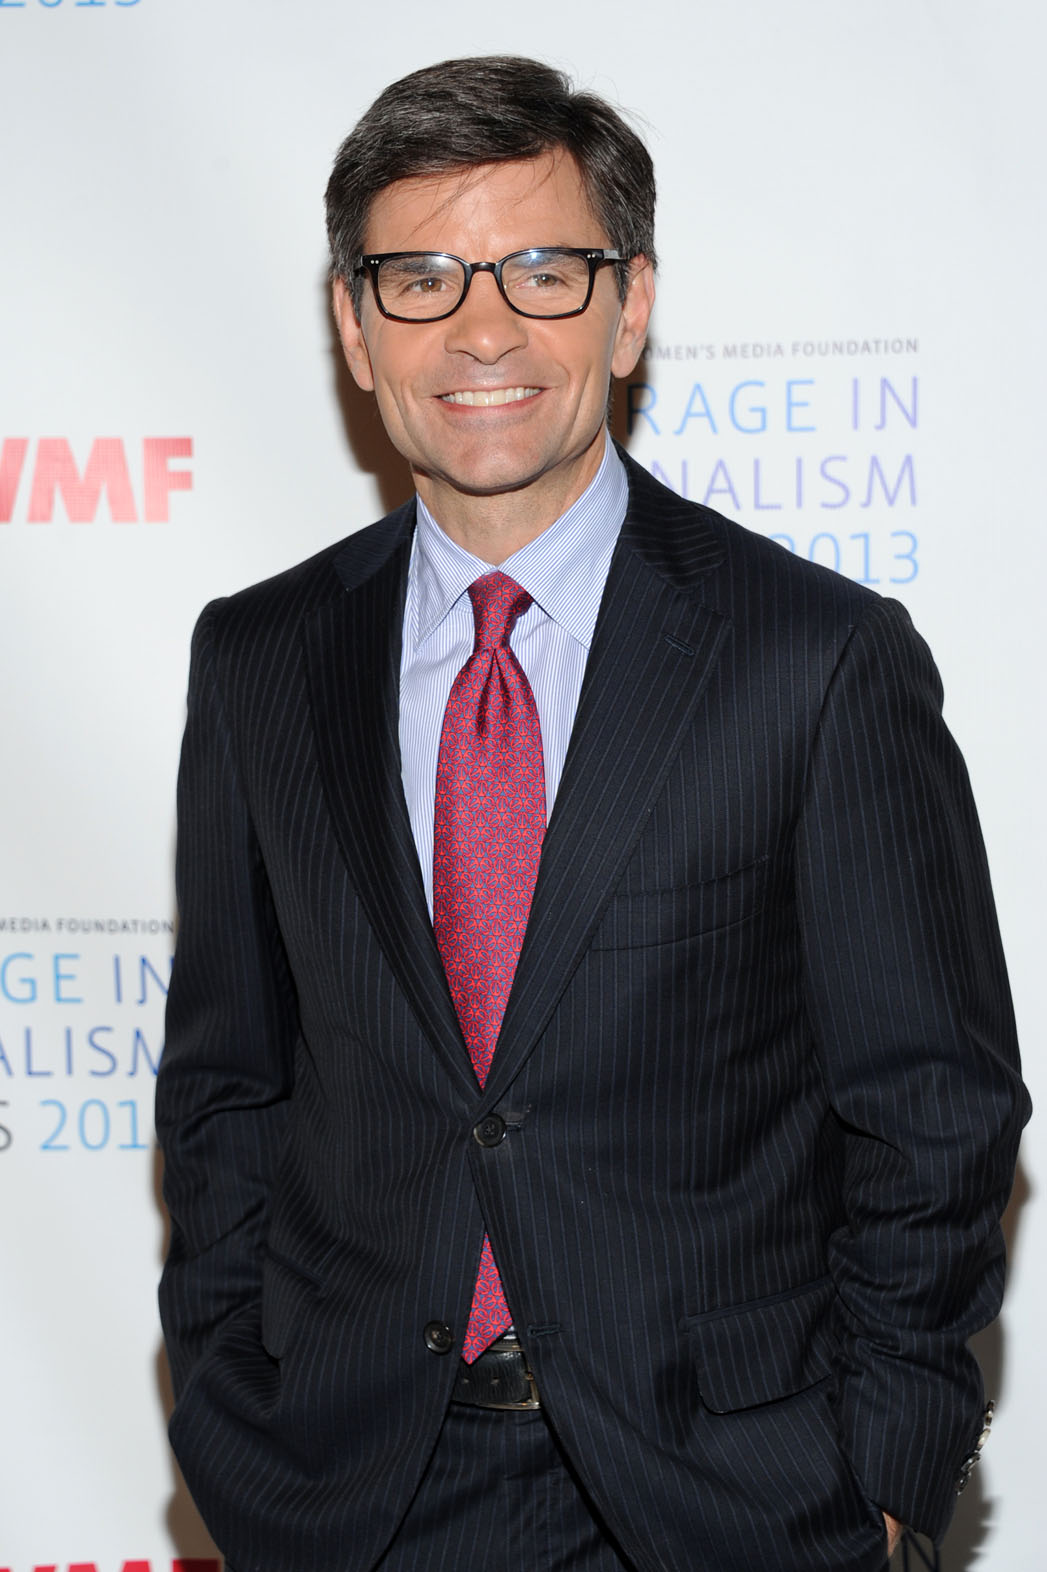 George Stephanopoulos Headshot - P 2014